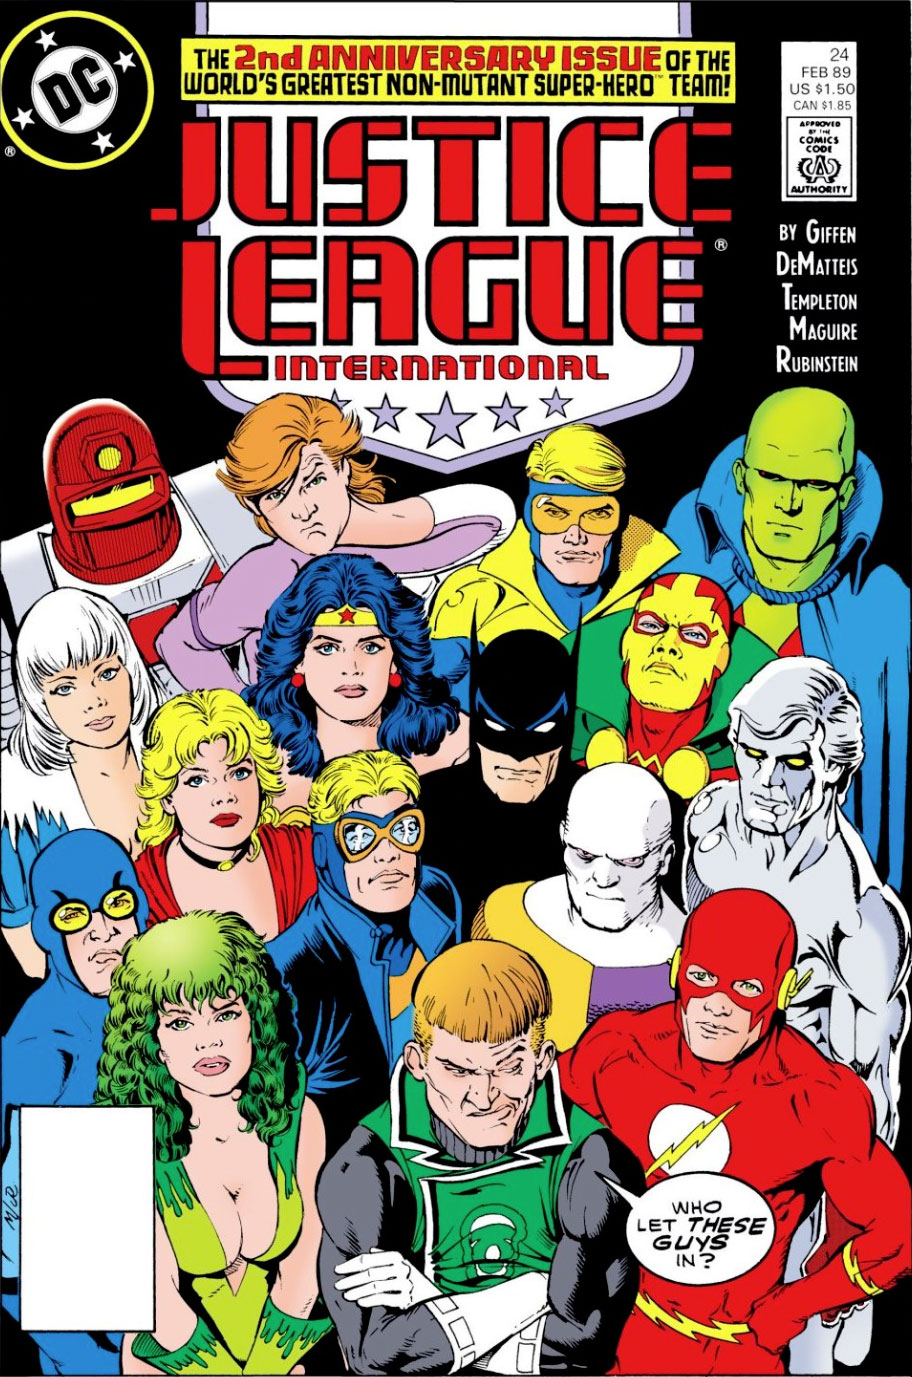 Justice League International #24 cover by Kevin Maguire and Joe Rubinstein